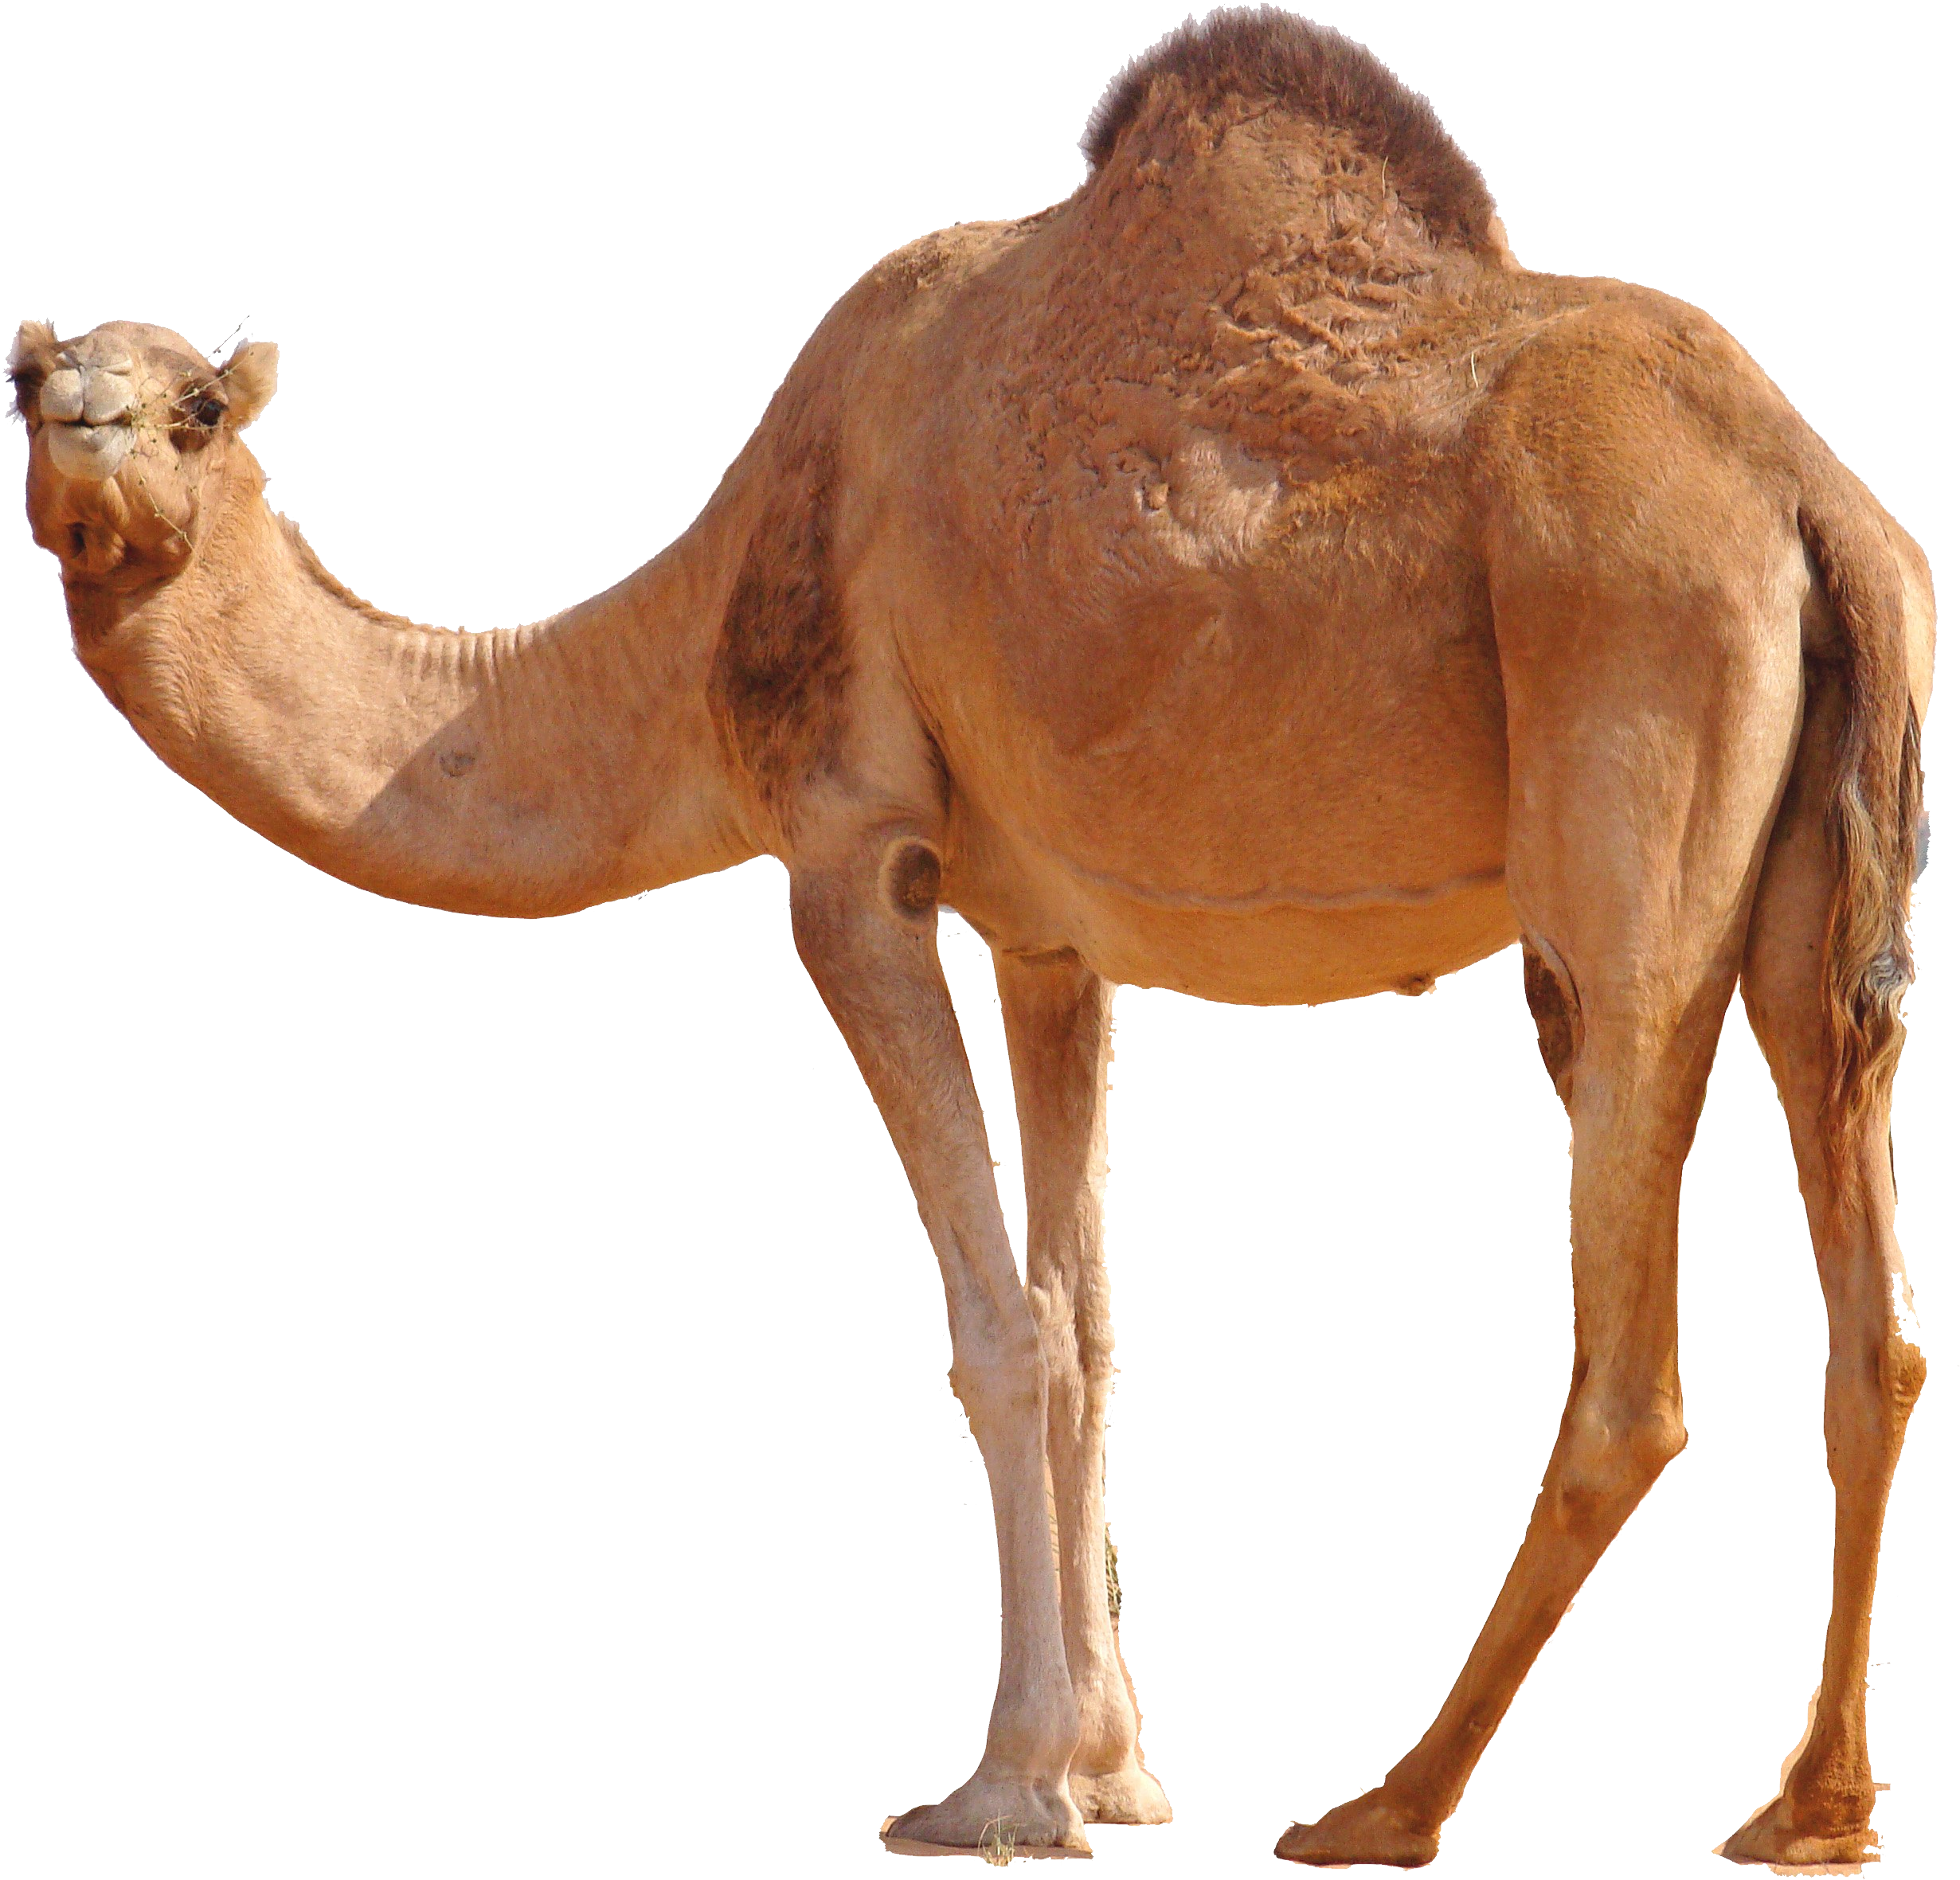 """essay on desert animal camel Desert animals and plants adopt themselves to the climate people in the desert use camels as we use cows deserts are famous for """"dates"""" the sweet fruits of desert summary a desert is generally without water and vegetation a desert may be too hot or too cold."""